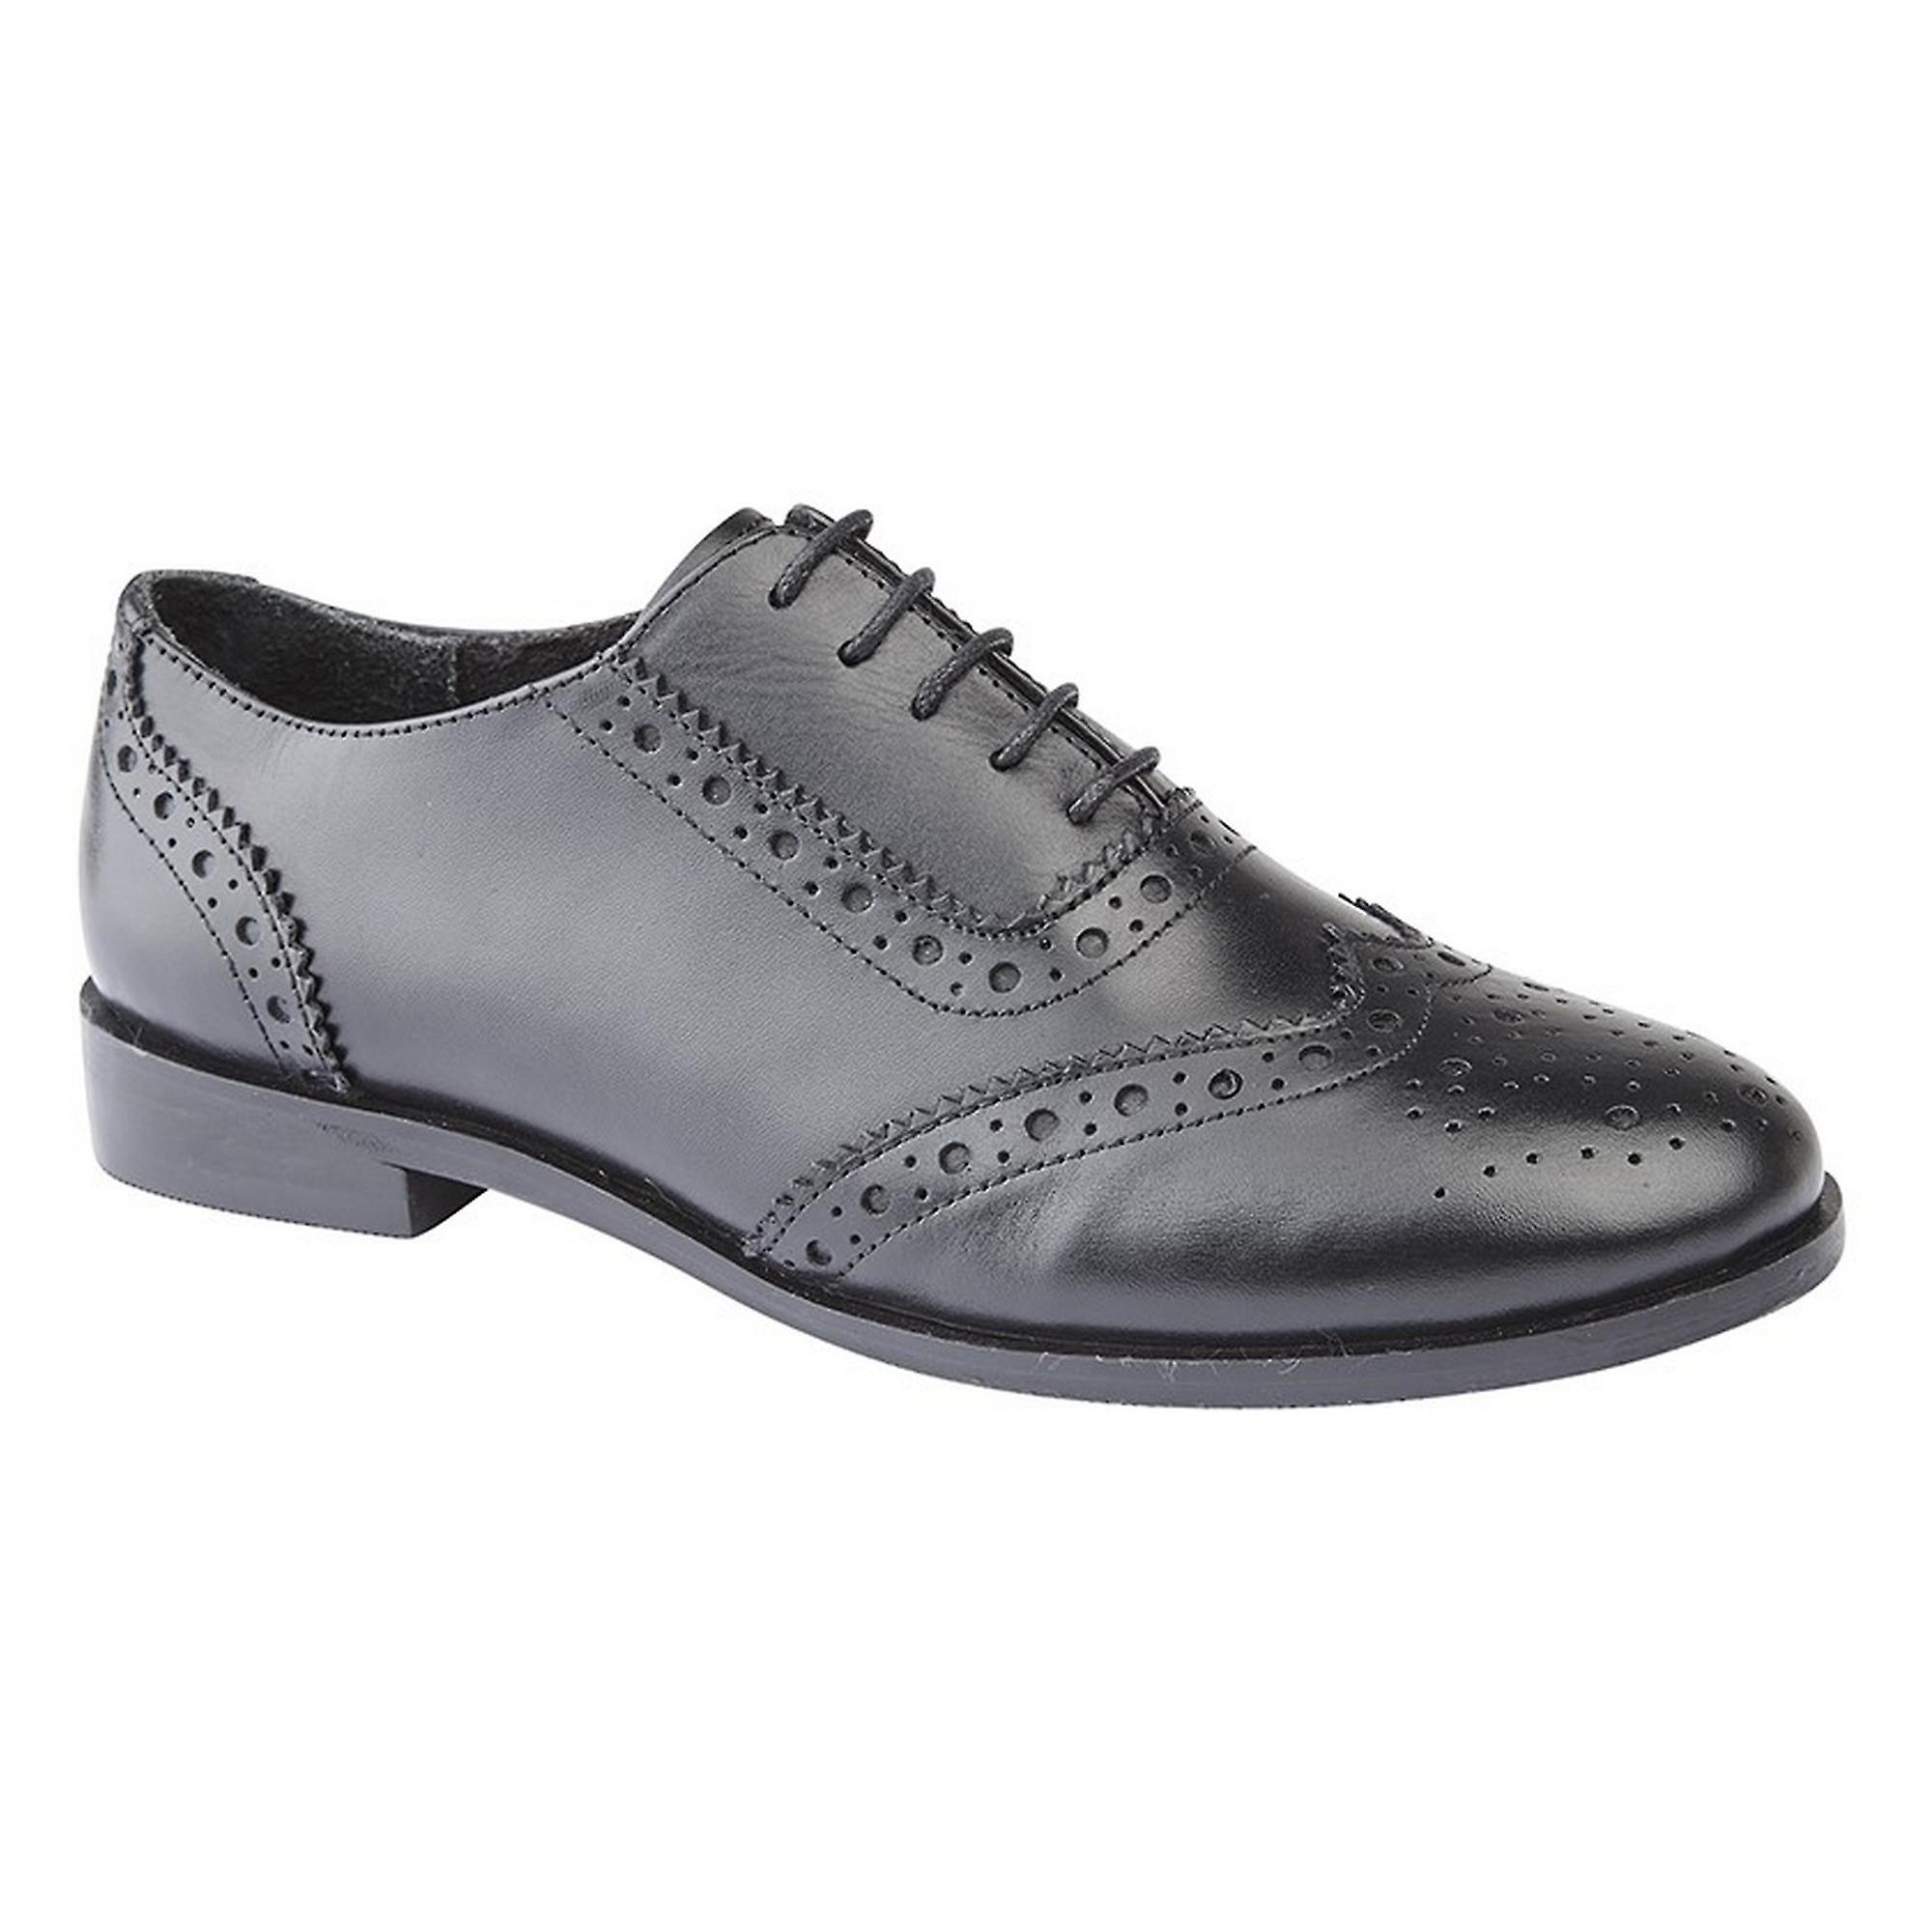 Cipriata Womens/Ladies Violetta Leather Brogue Oxford Shoes